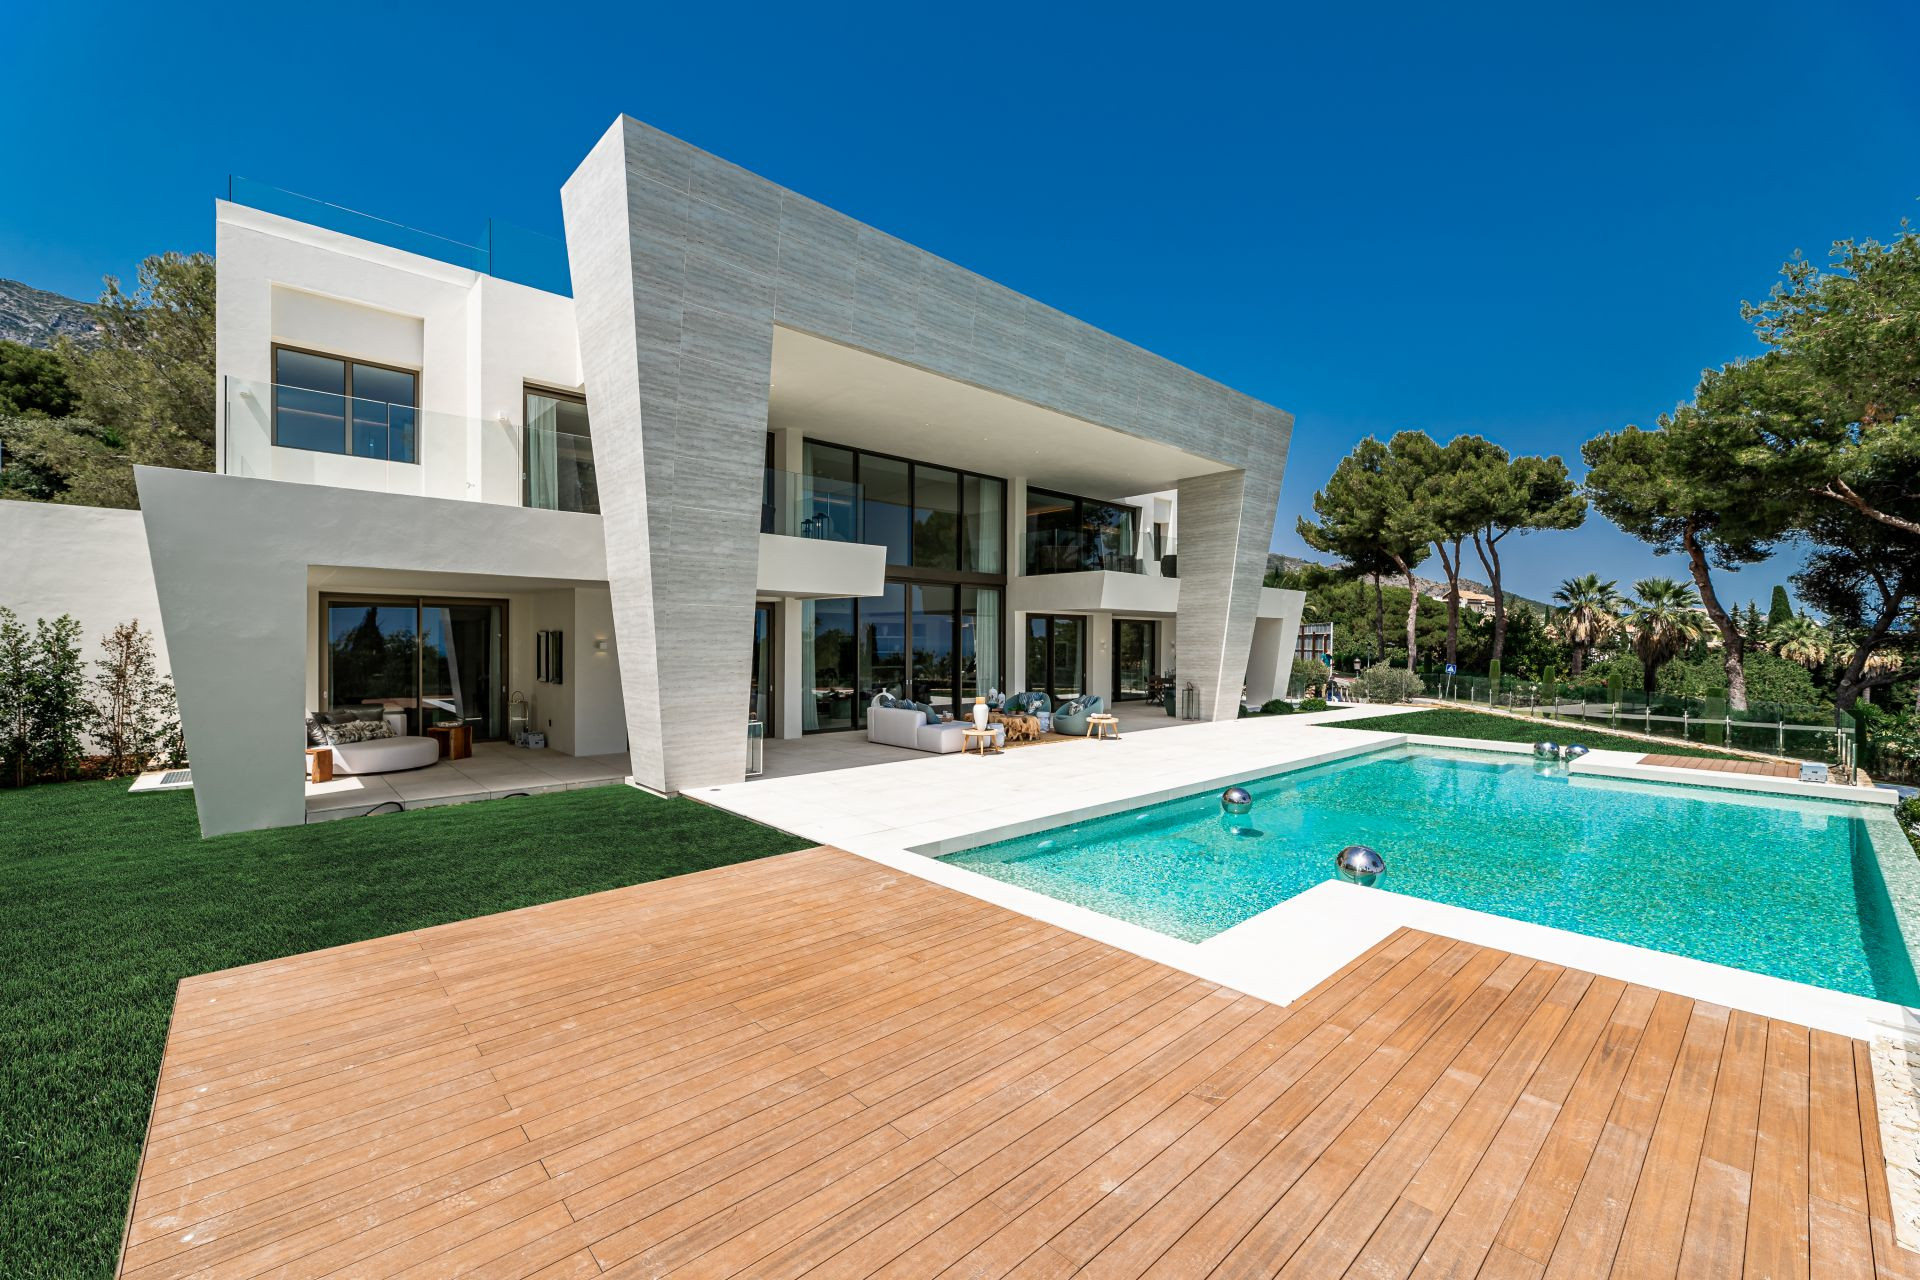 Villa for sale in <i>Sierra Blanca, </i>Marbella Golden Mile